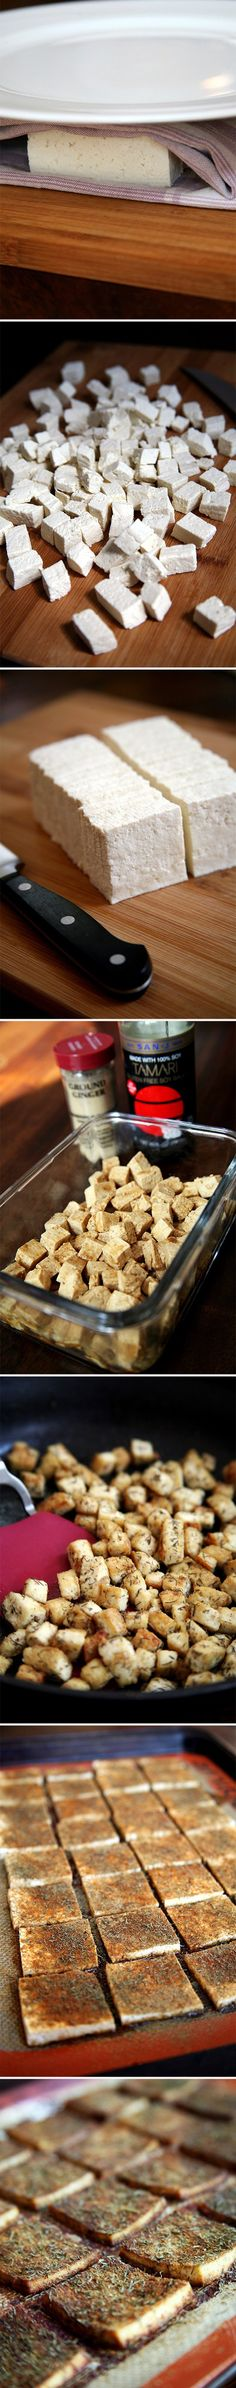 A Step-by-Step Guide on the Best Ways to Cook Tofu